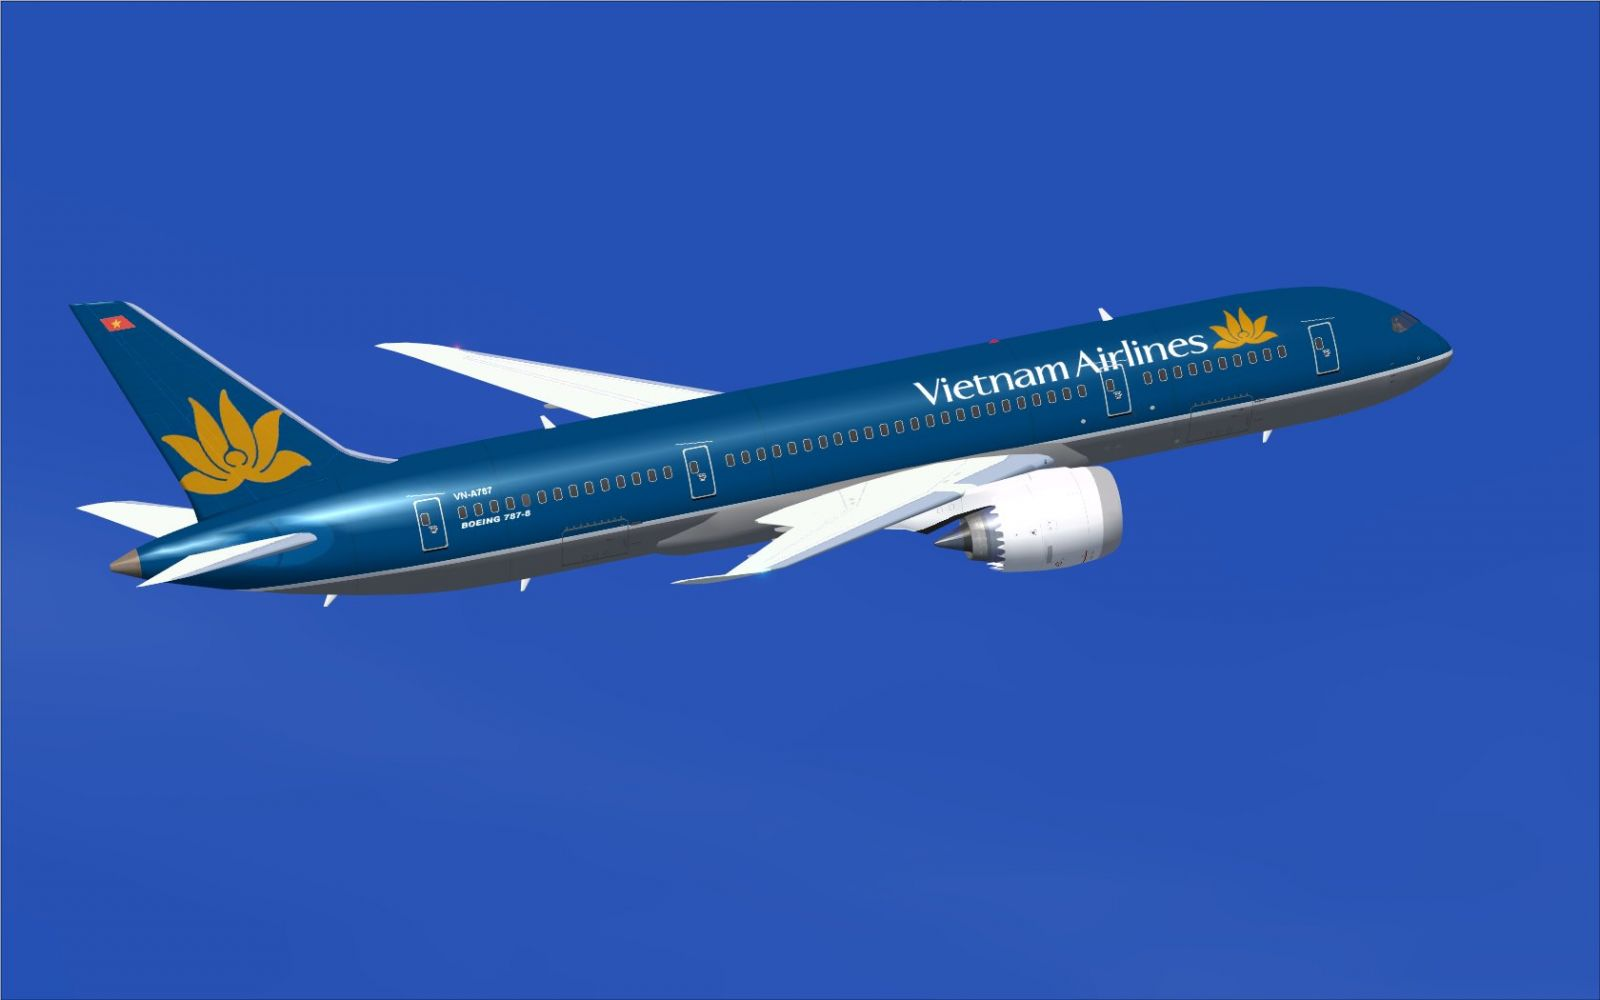 vietnam airline 3 reviews of vietnam airlines this review is useful for those considering flying this airline from singapore to europe via either ho chi minh city (sgn) or hanoi (han).